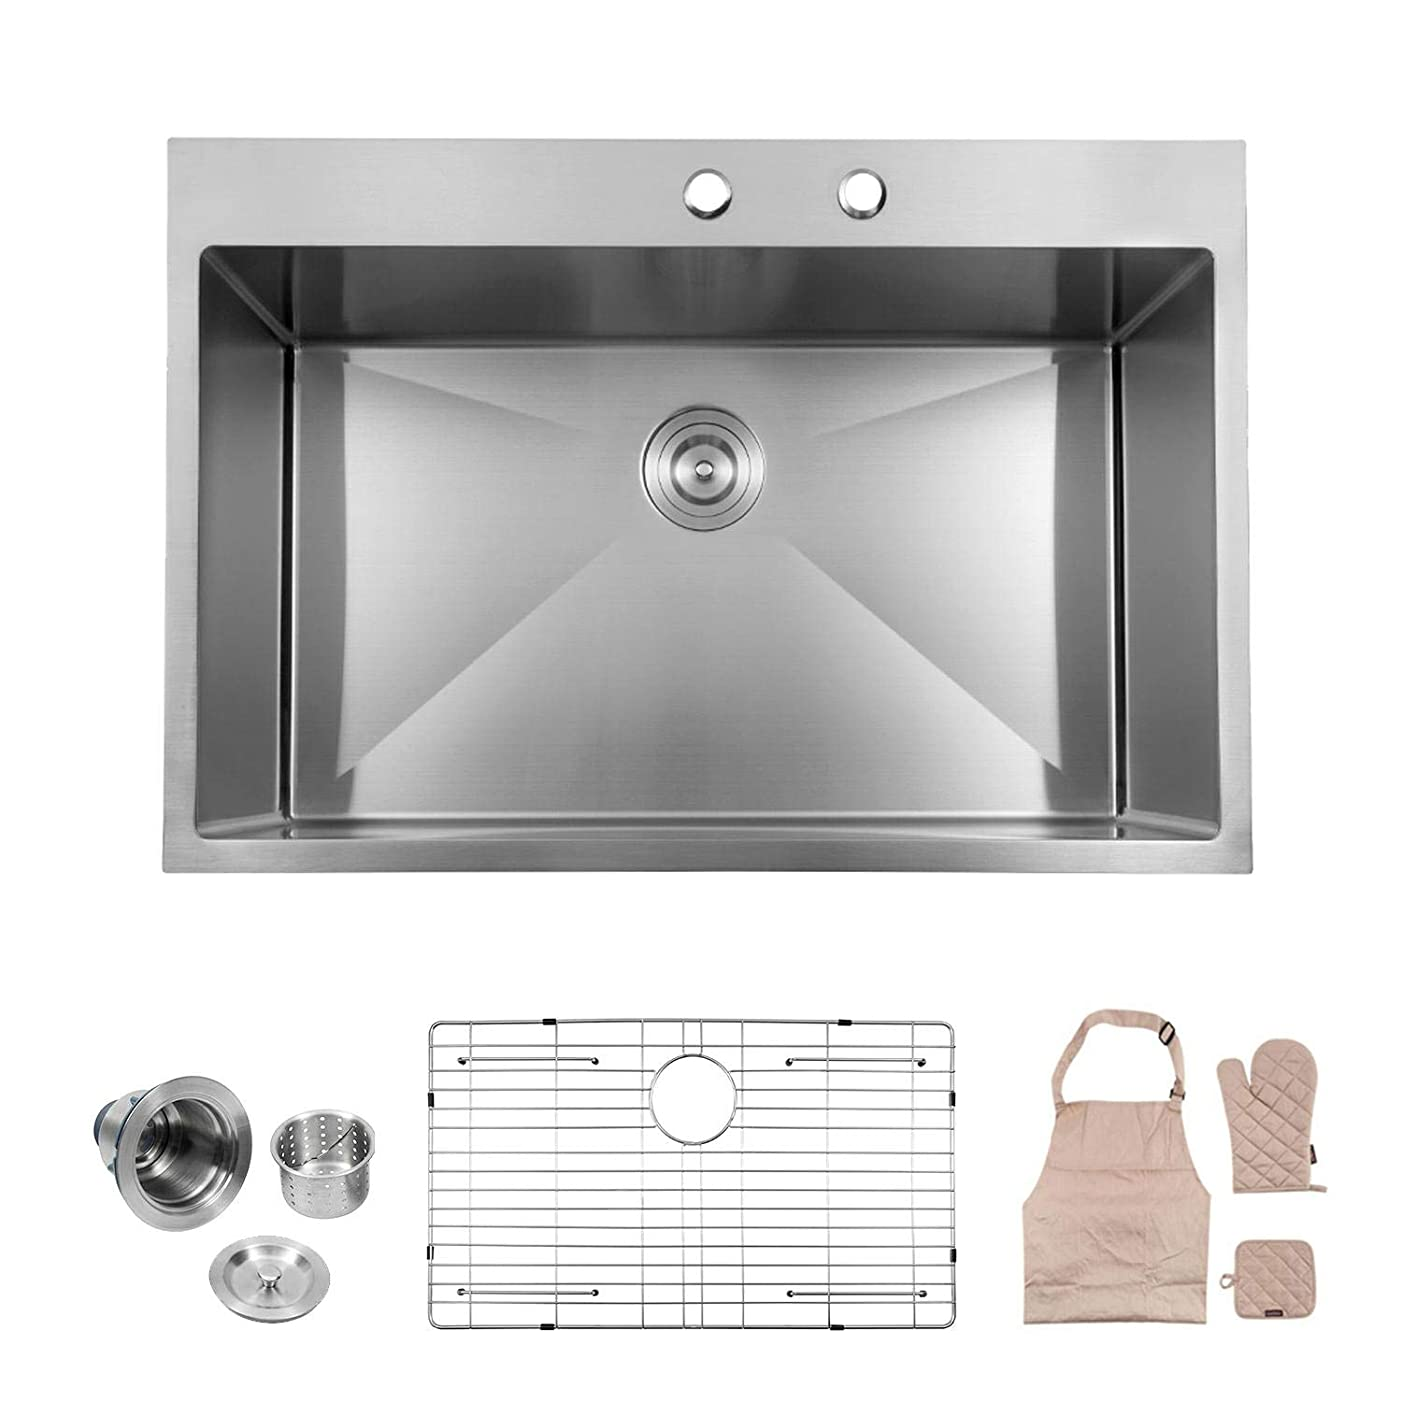 Lordear LT3322R1 33 x 22x 10 Inch Drop-in Topmount 16 Gauge R10 Tight Radius Stainless Steel Kitchen Sink Single Bowl